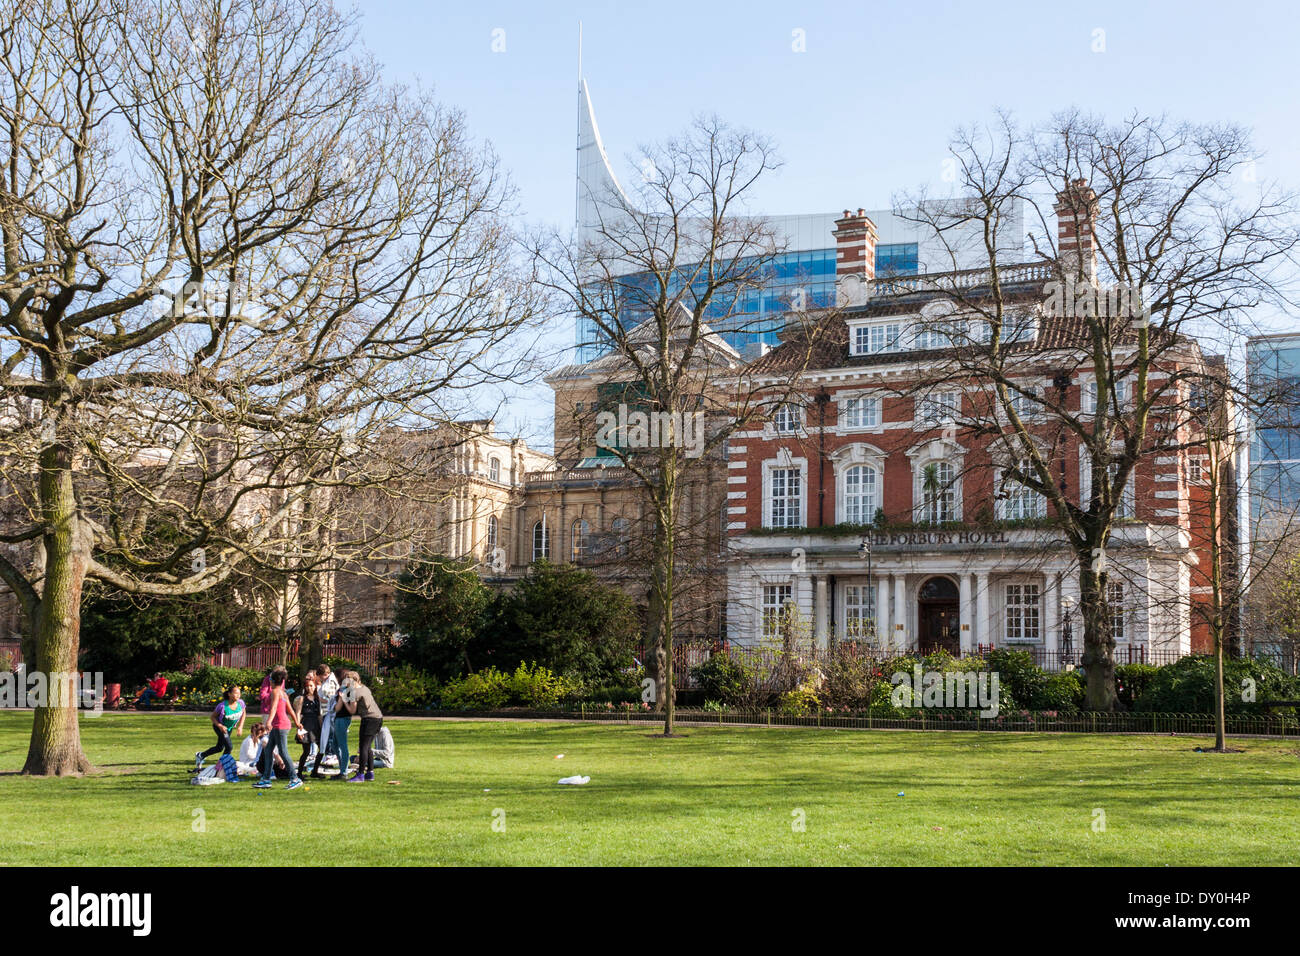 Forbury Hotel and the Blade from Forbury Gardens, Reading, Berkshire, England, GB, UK. - Stock Image